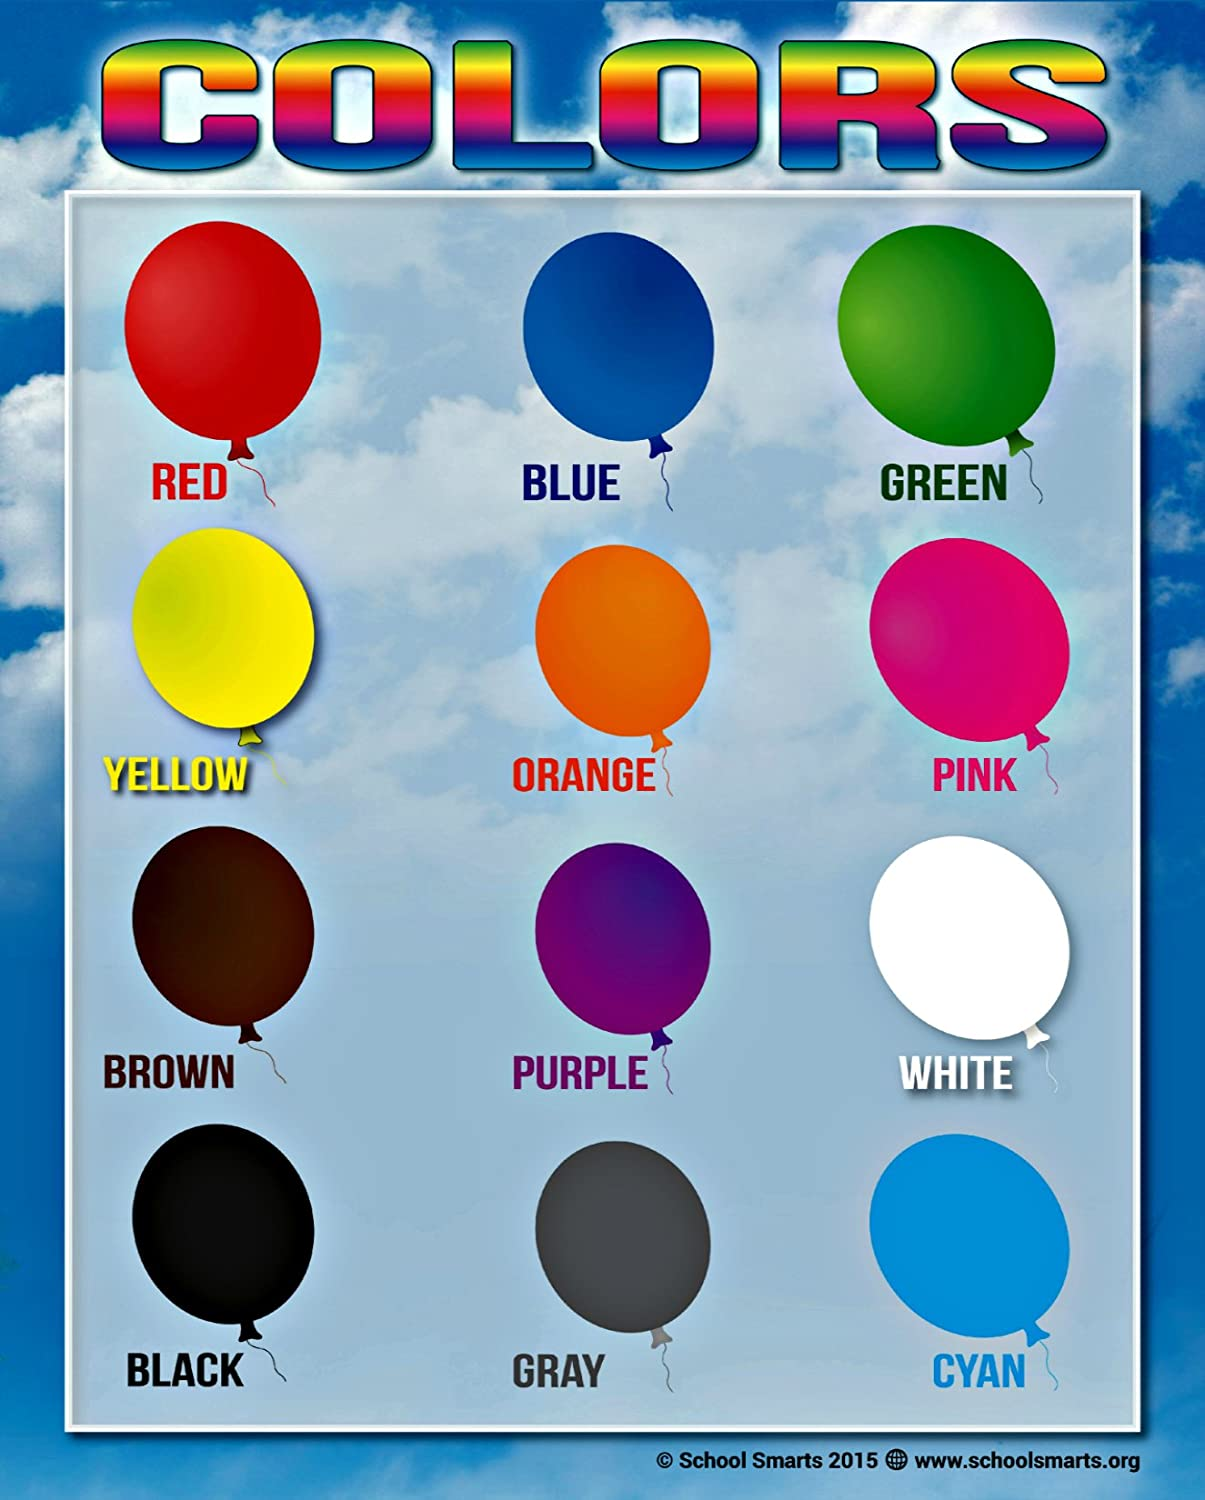 Amazon.com : Colors Chart by School Smarts 12 BOLD Colors ...